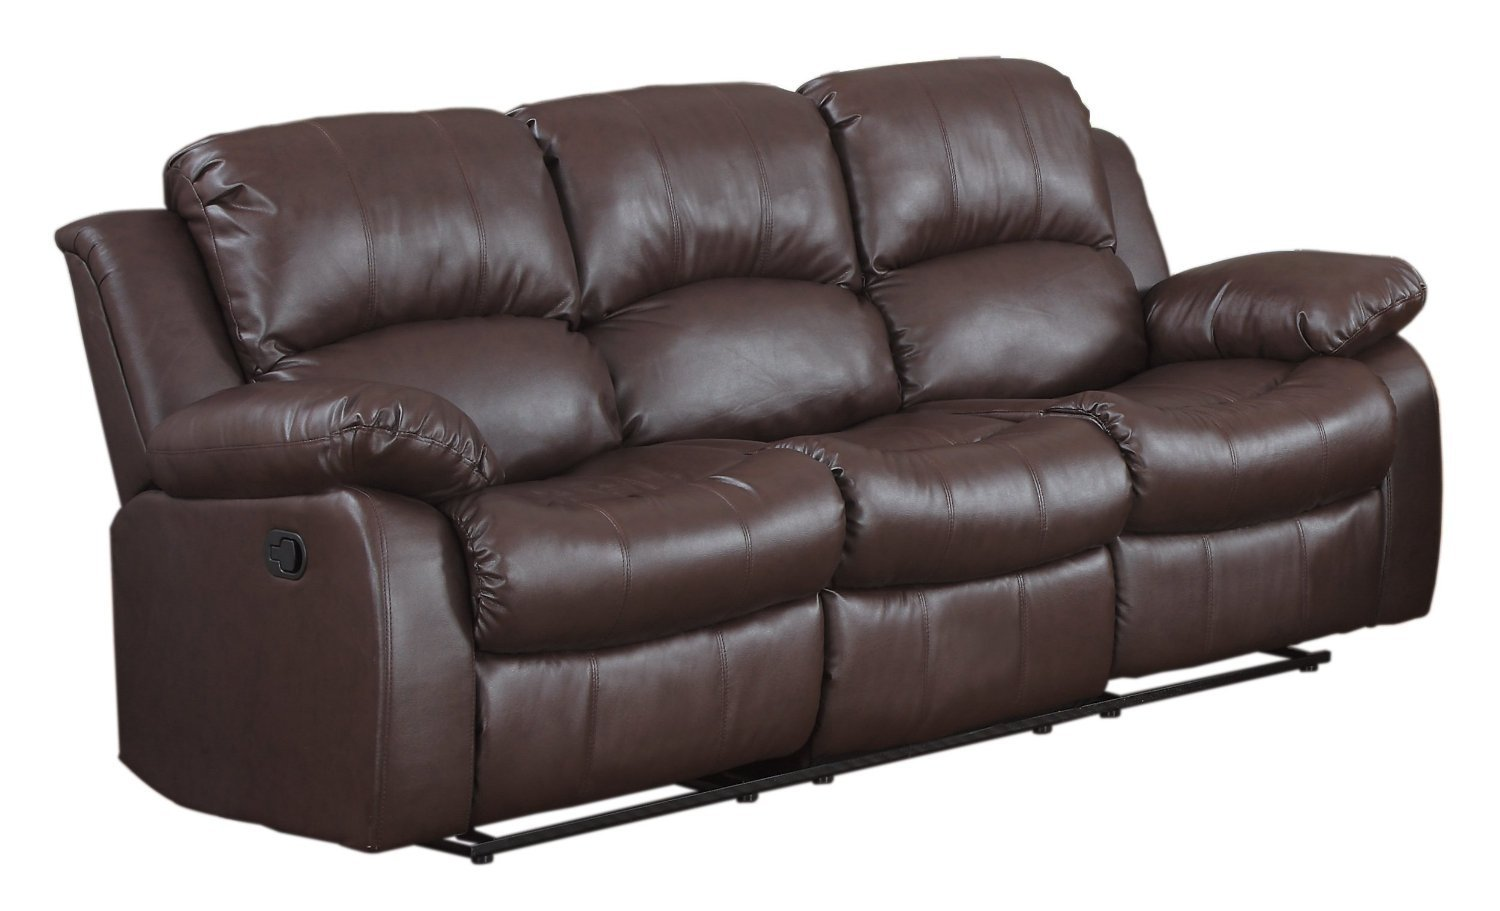 Contemporary Amazon.com: Bonded Leather Double Recliner Sofa Living Room Reclining Couch  (Brown): Kitchen 3 seater recliner leather sofa